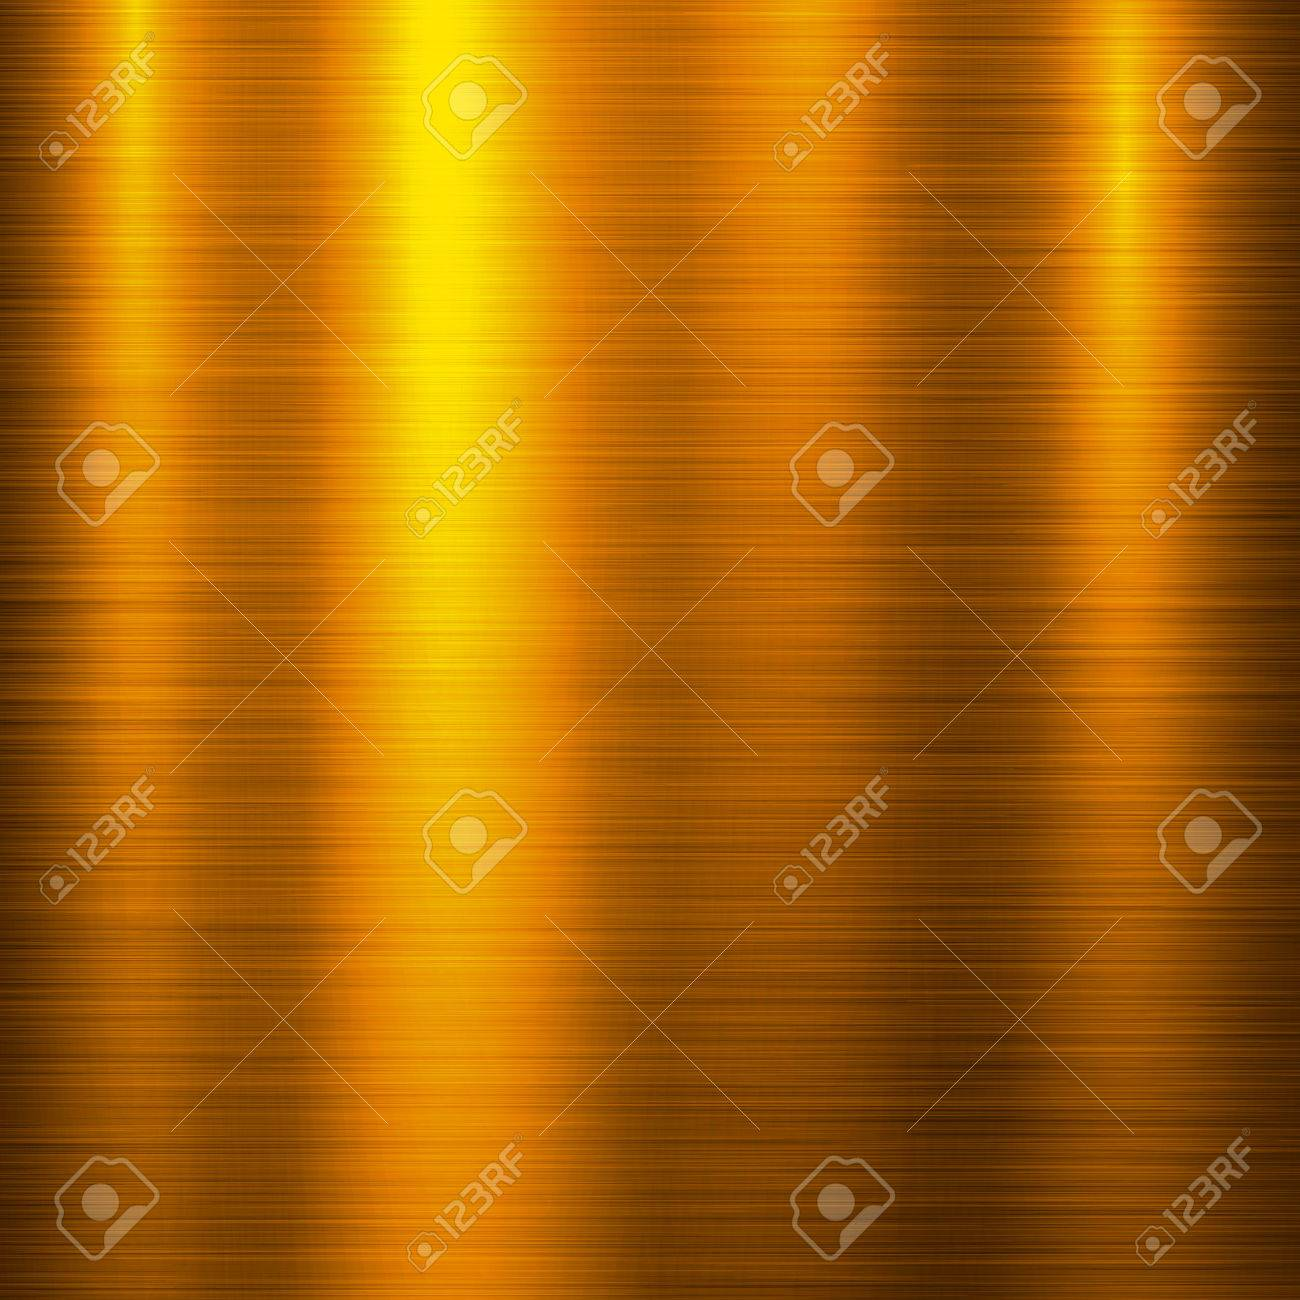 Gold metal technology background with polished, brushed metal